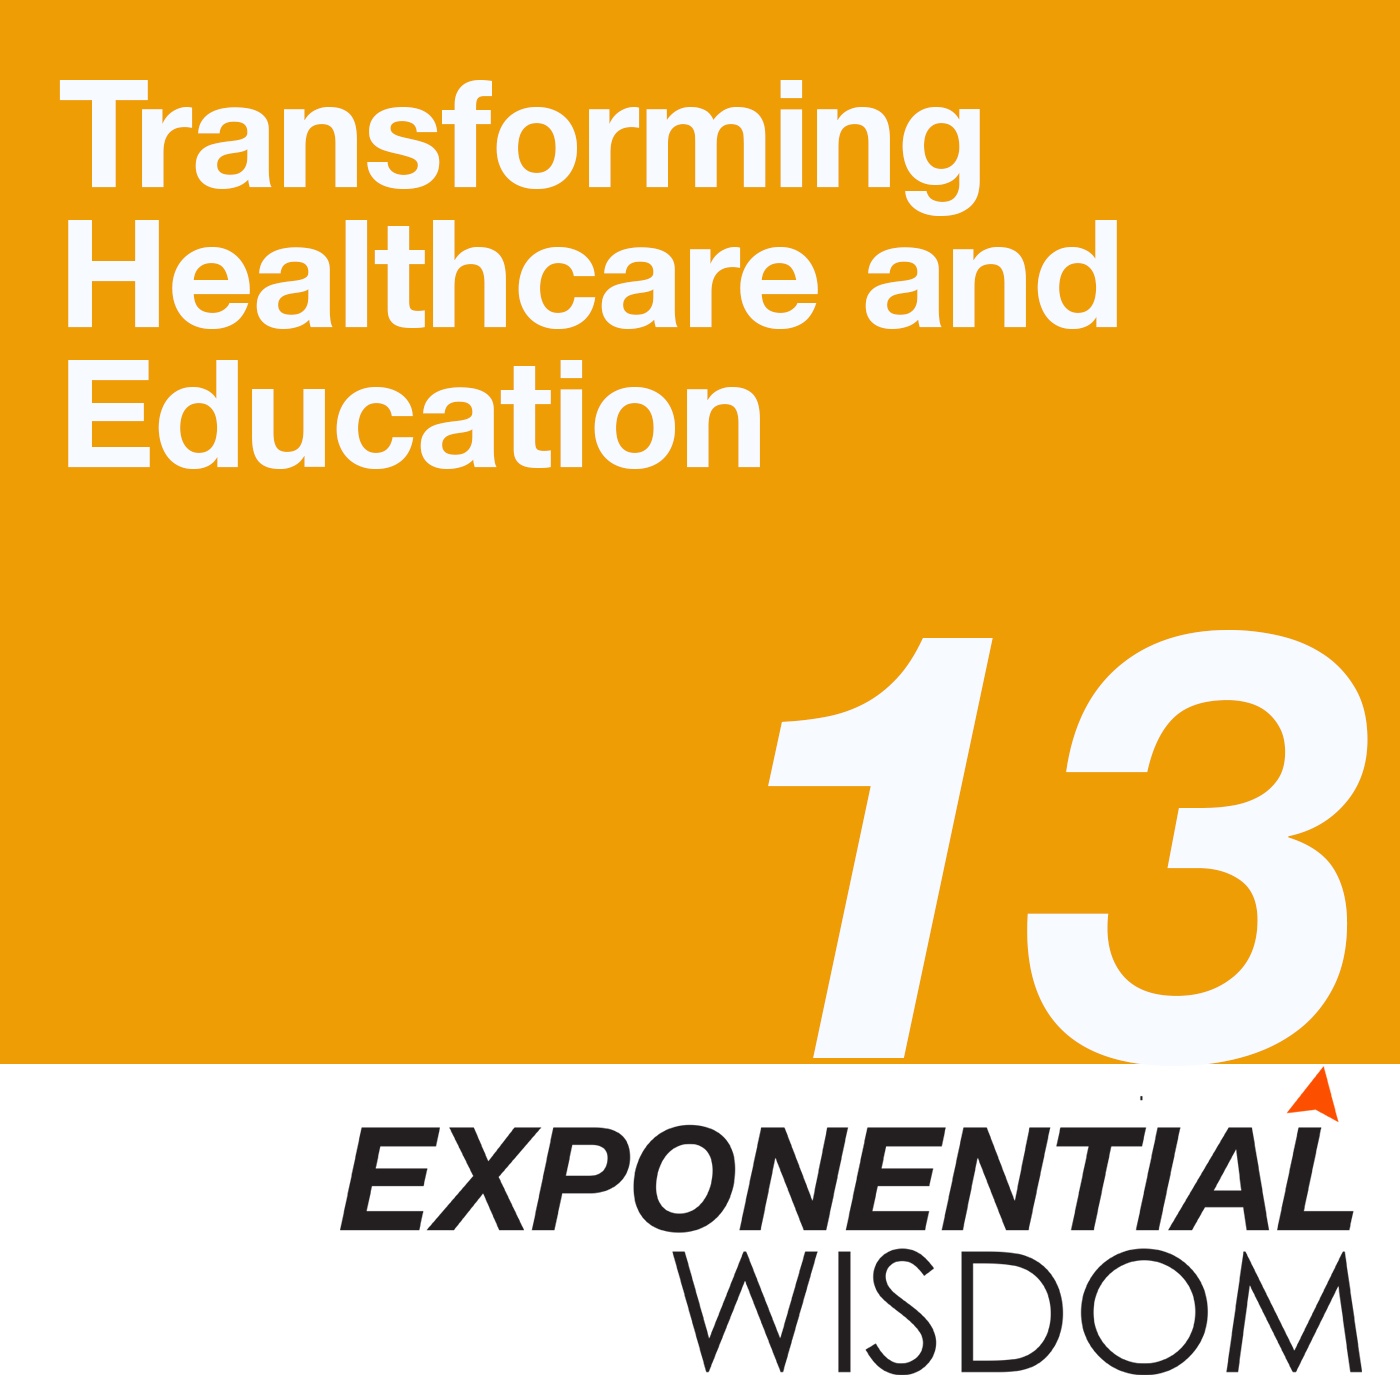 Episode 13: Transforming Healthcare and Education